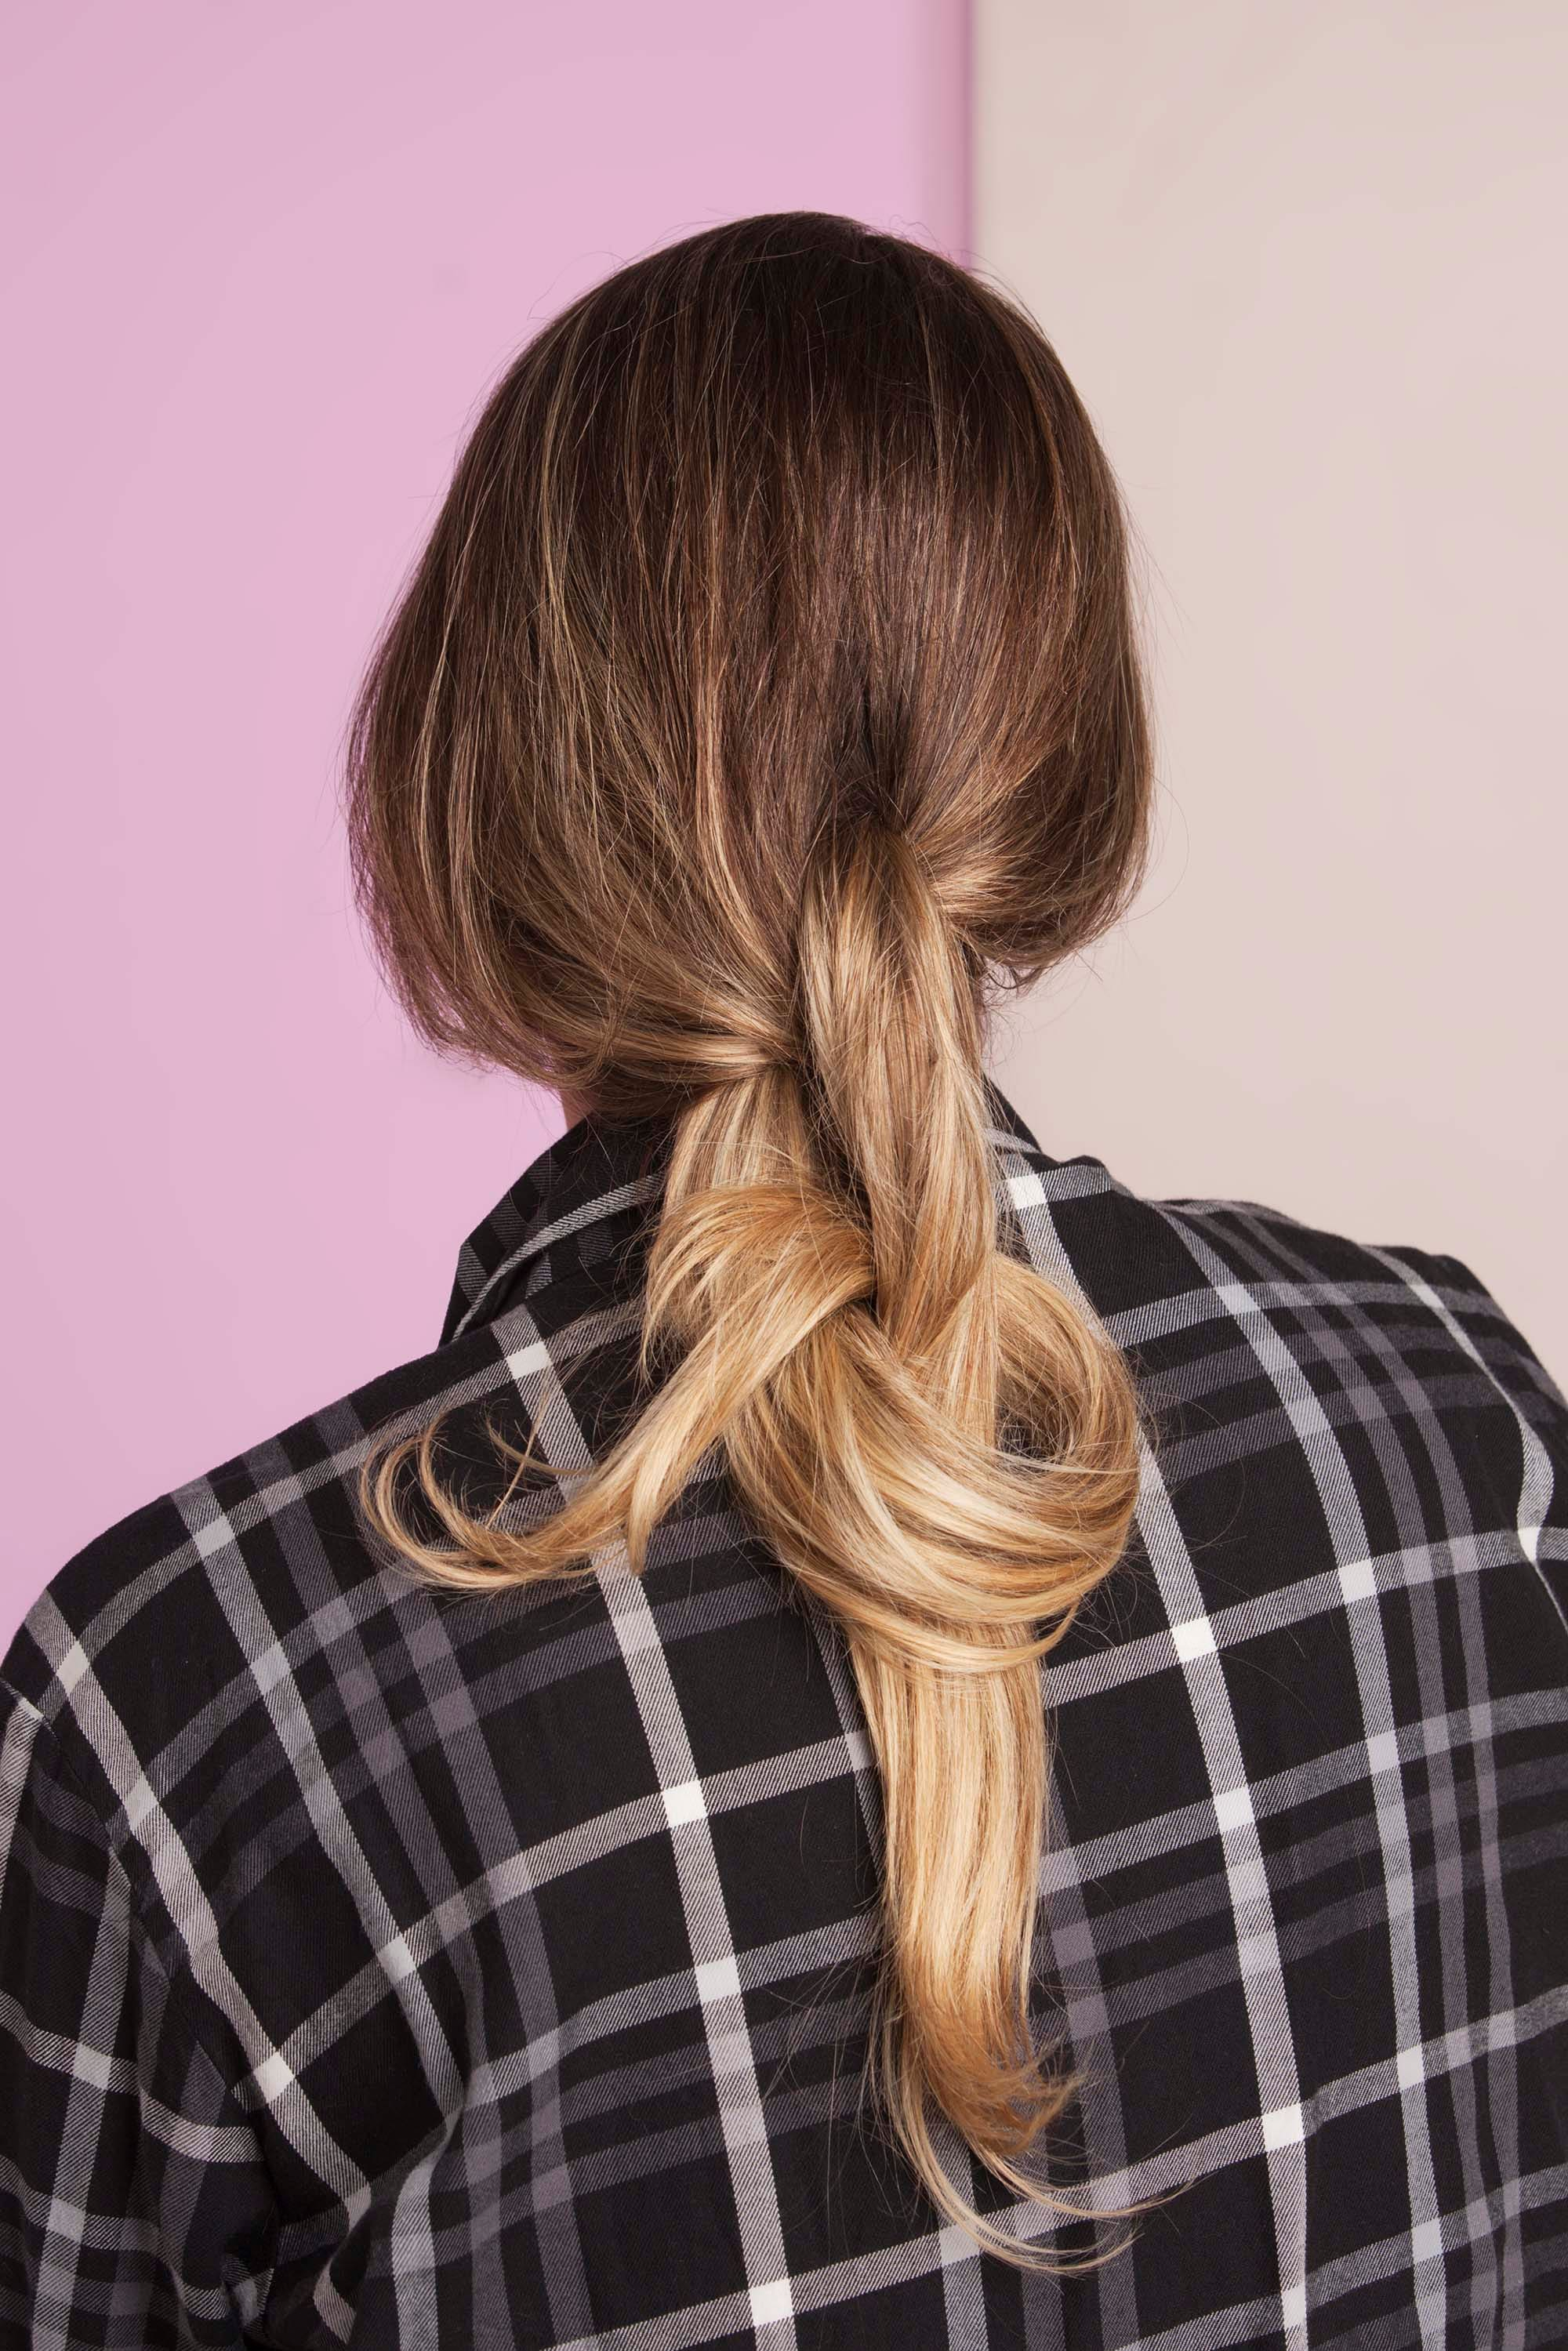 Tutorial: How to Create Double Knot Ponytail Hairstyles